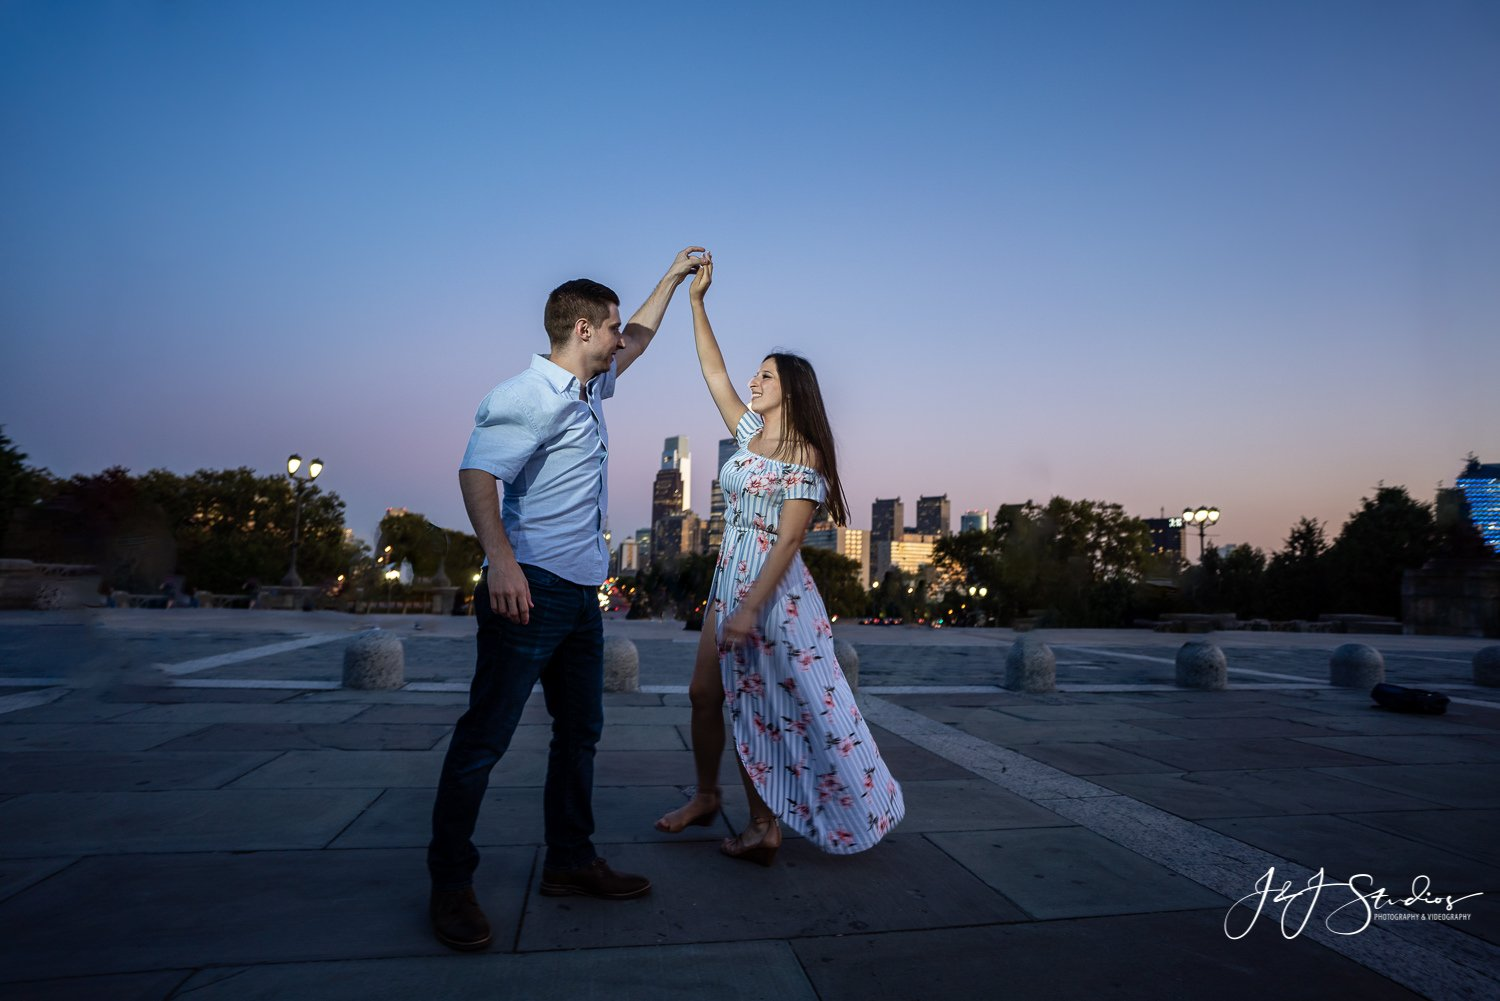 night time dance engagement photo at the philadelphia museum of art